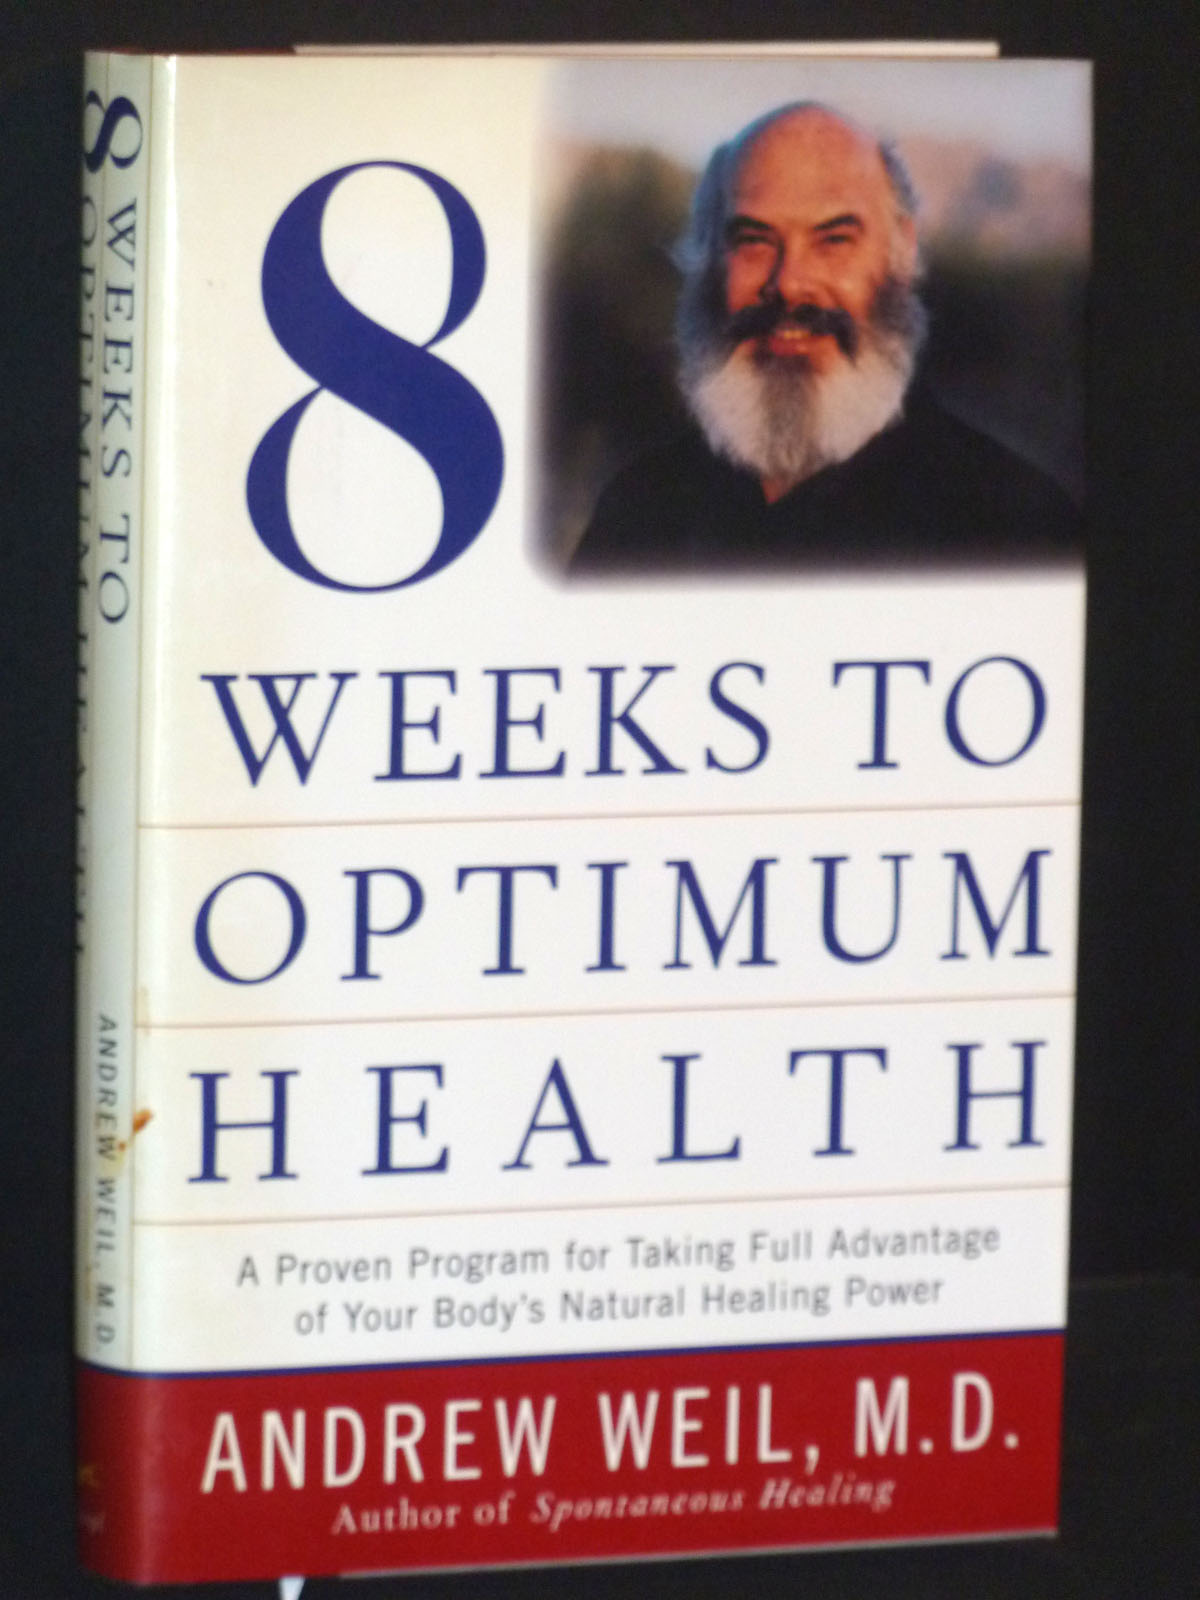 Image for 8  Weeks to Optimum Health (Proven Program for Taking Full Advantage of Your Body's Natural Healing Power)